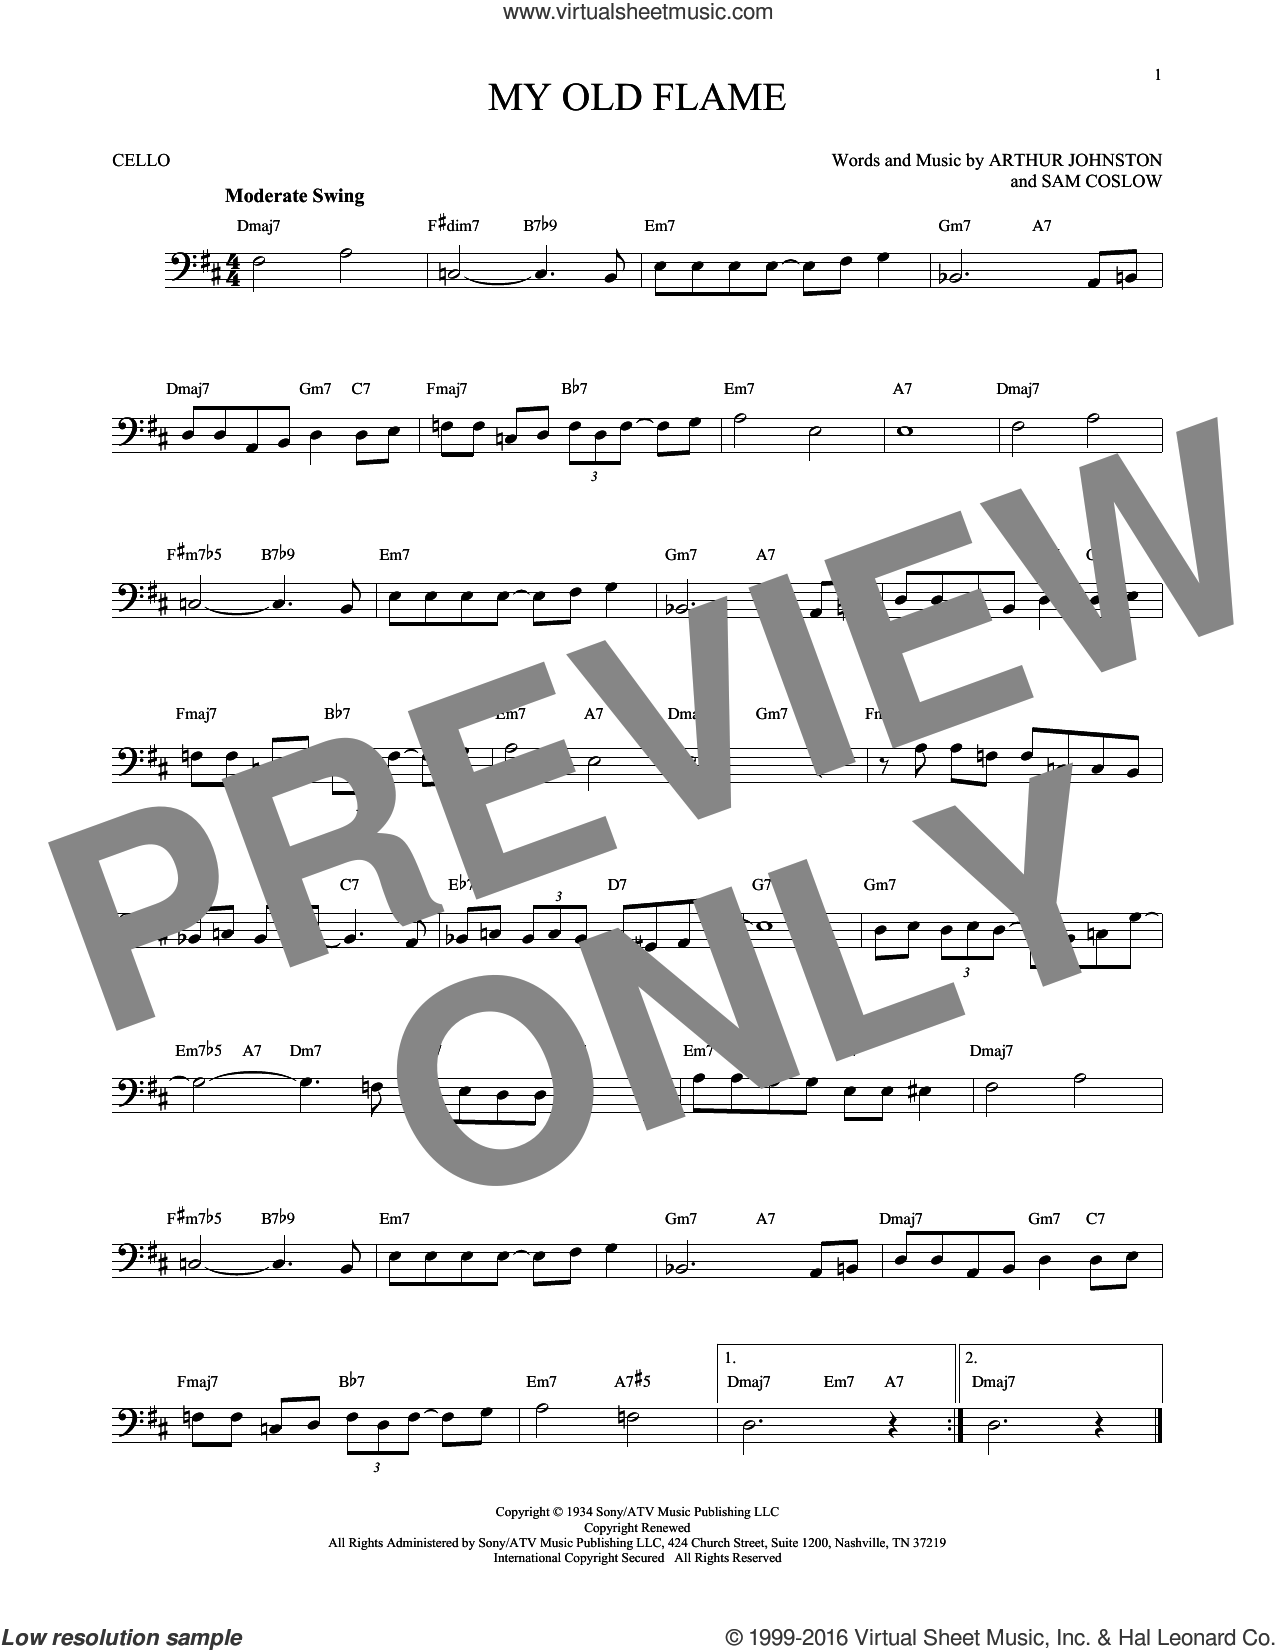 My Old Flame sheet music for cello solo by Arthur Johnston, Peggy Lee and Sam Coslow, intermediate skill level